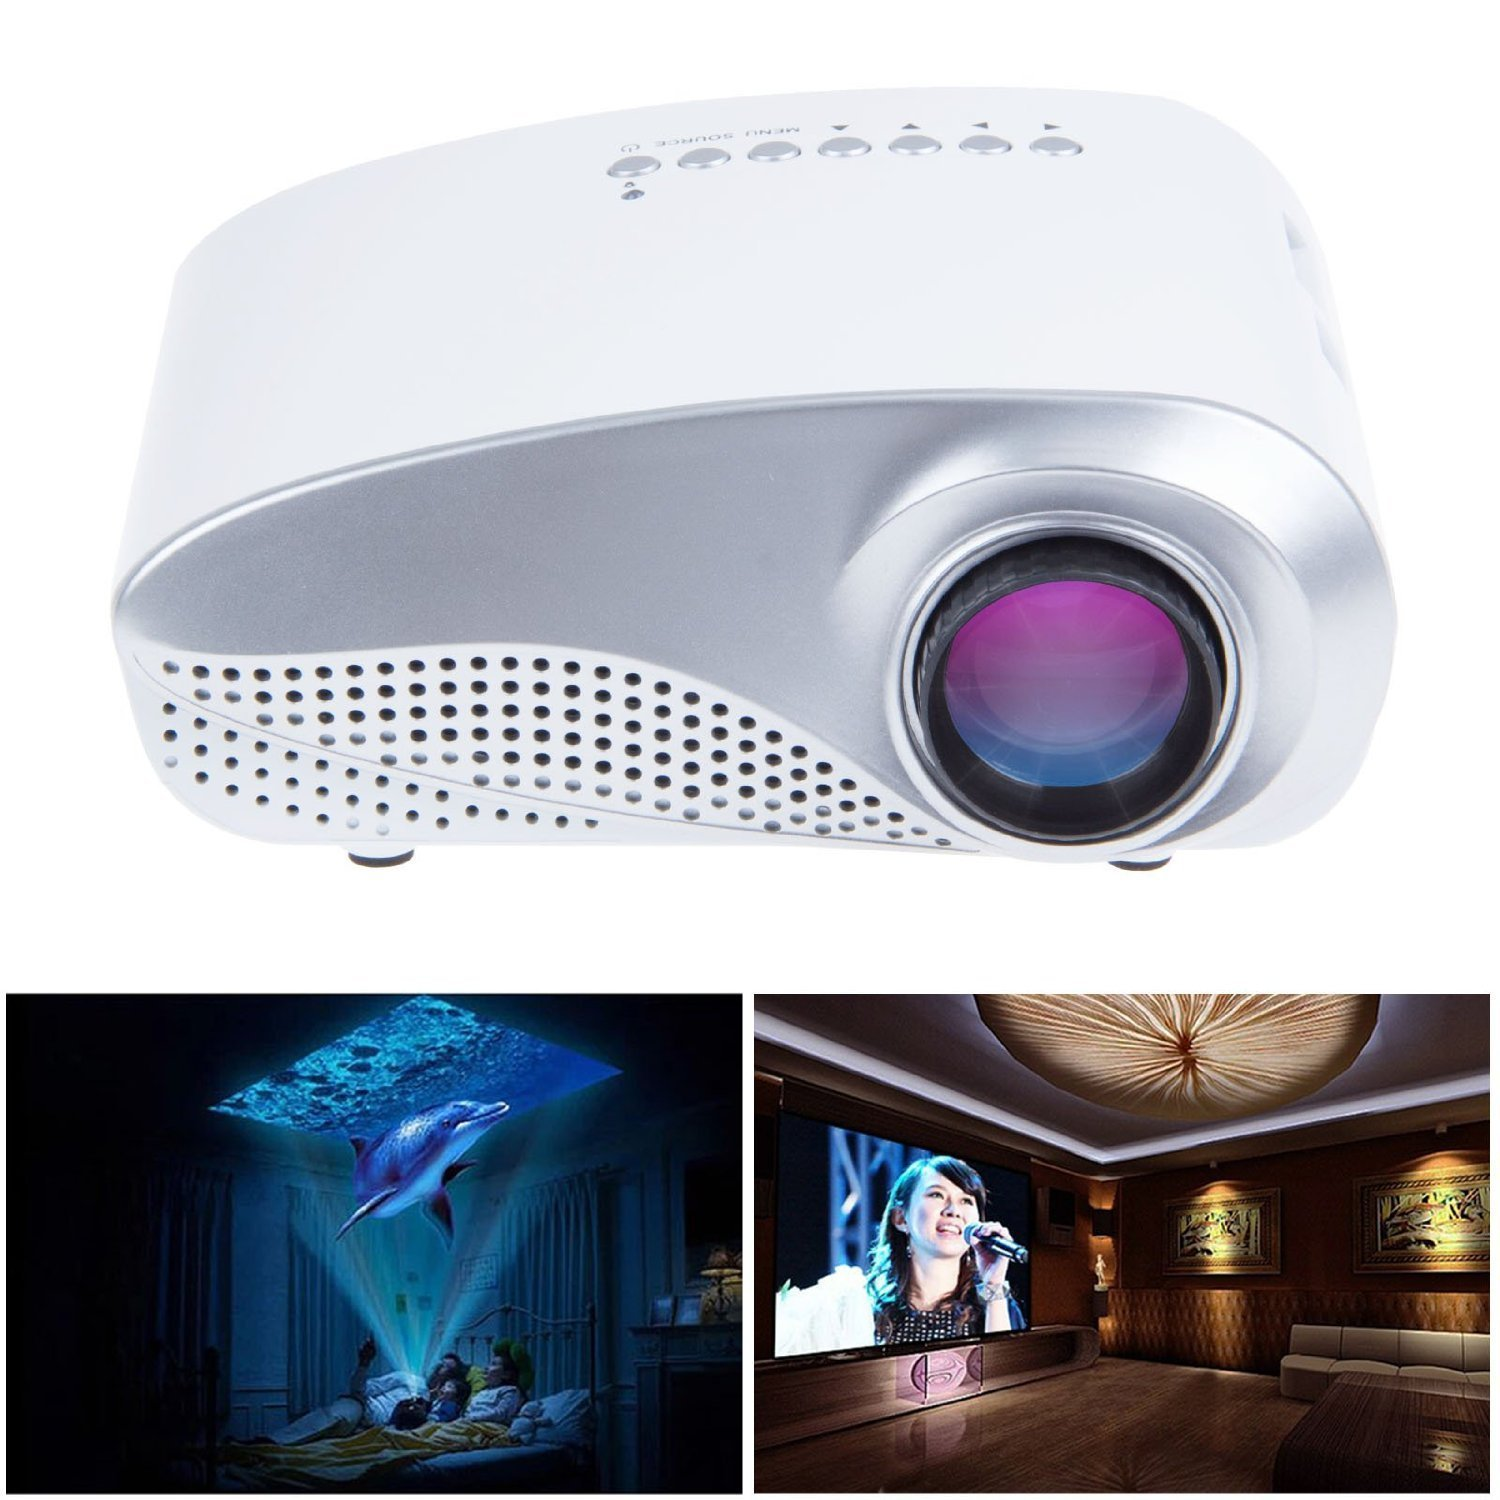 Rienar LED Mini Projector Fashionable Home Theater Support HD Video Games TV Movie TXT Music Pocket Size Projector